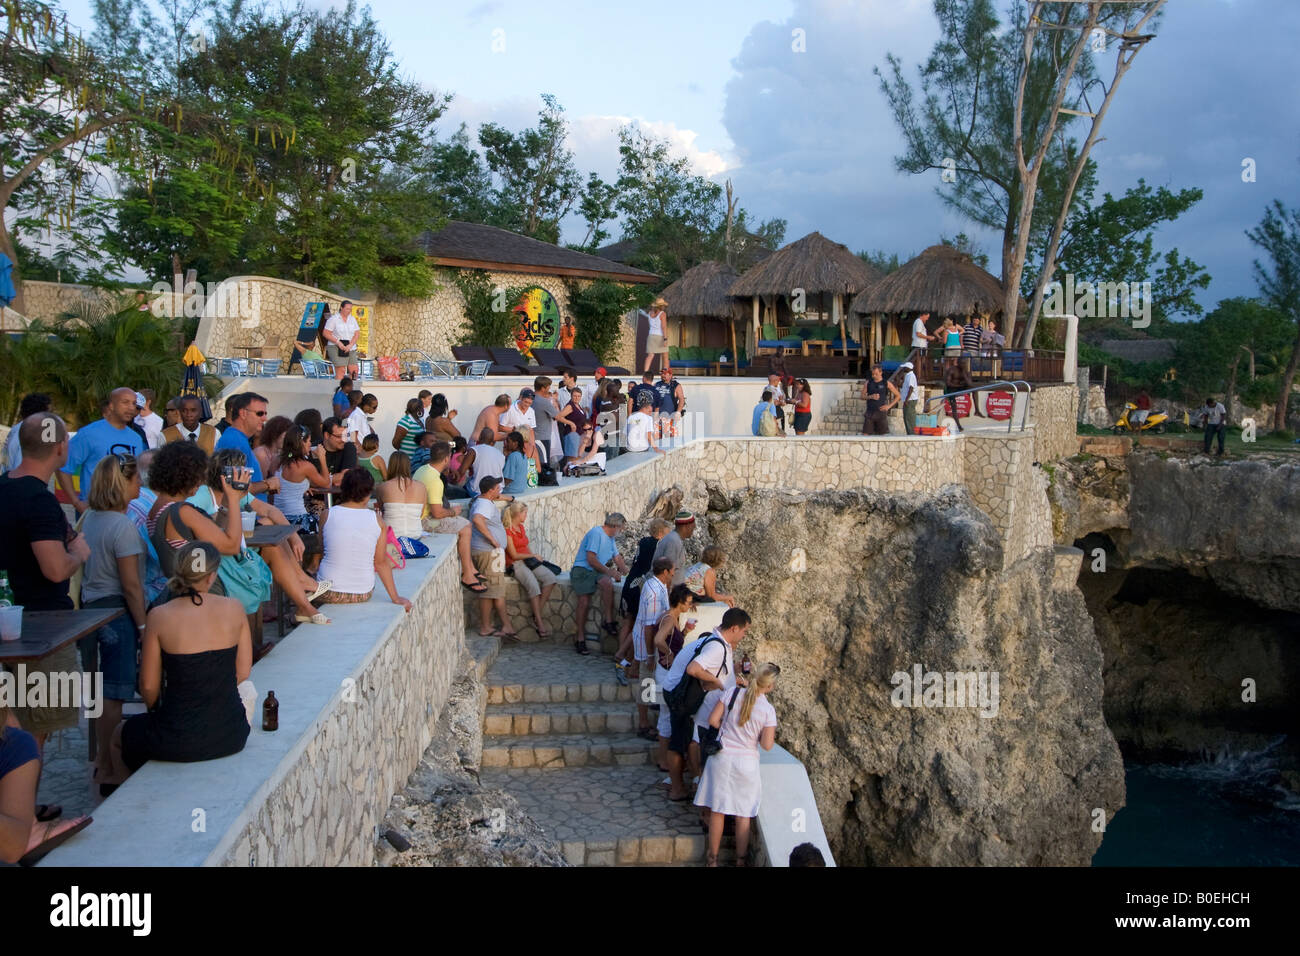 Jamaica Negril Ricks Cafe Crowd waiting for Cliff Diver - Stock Image